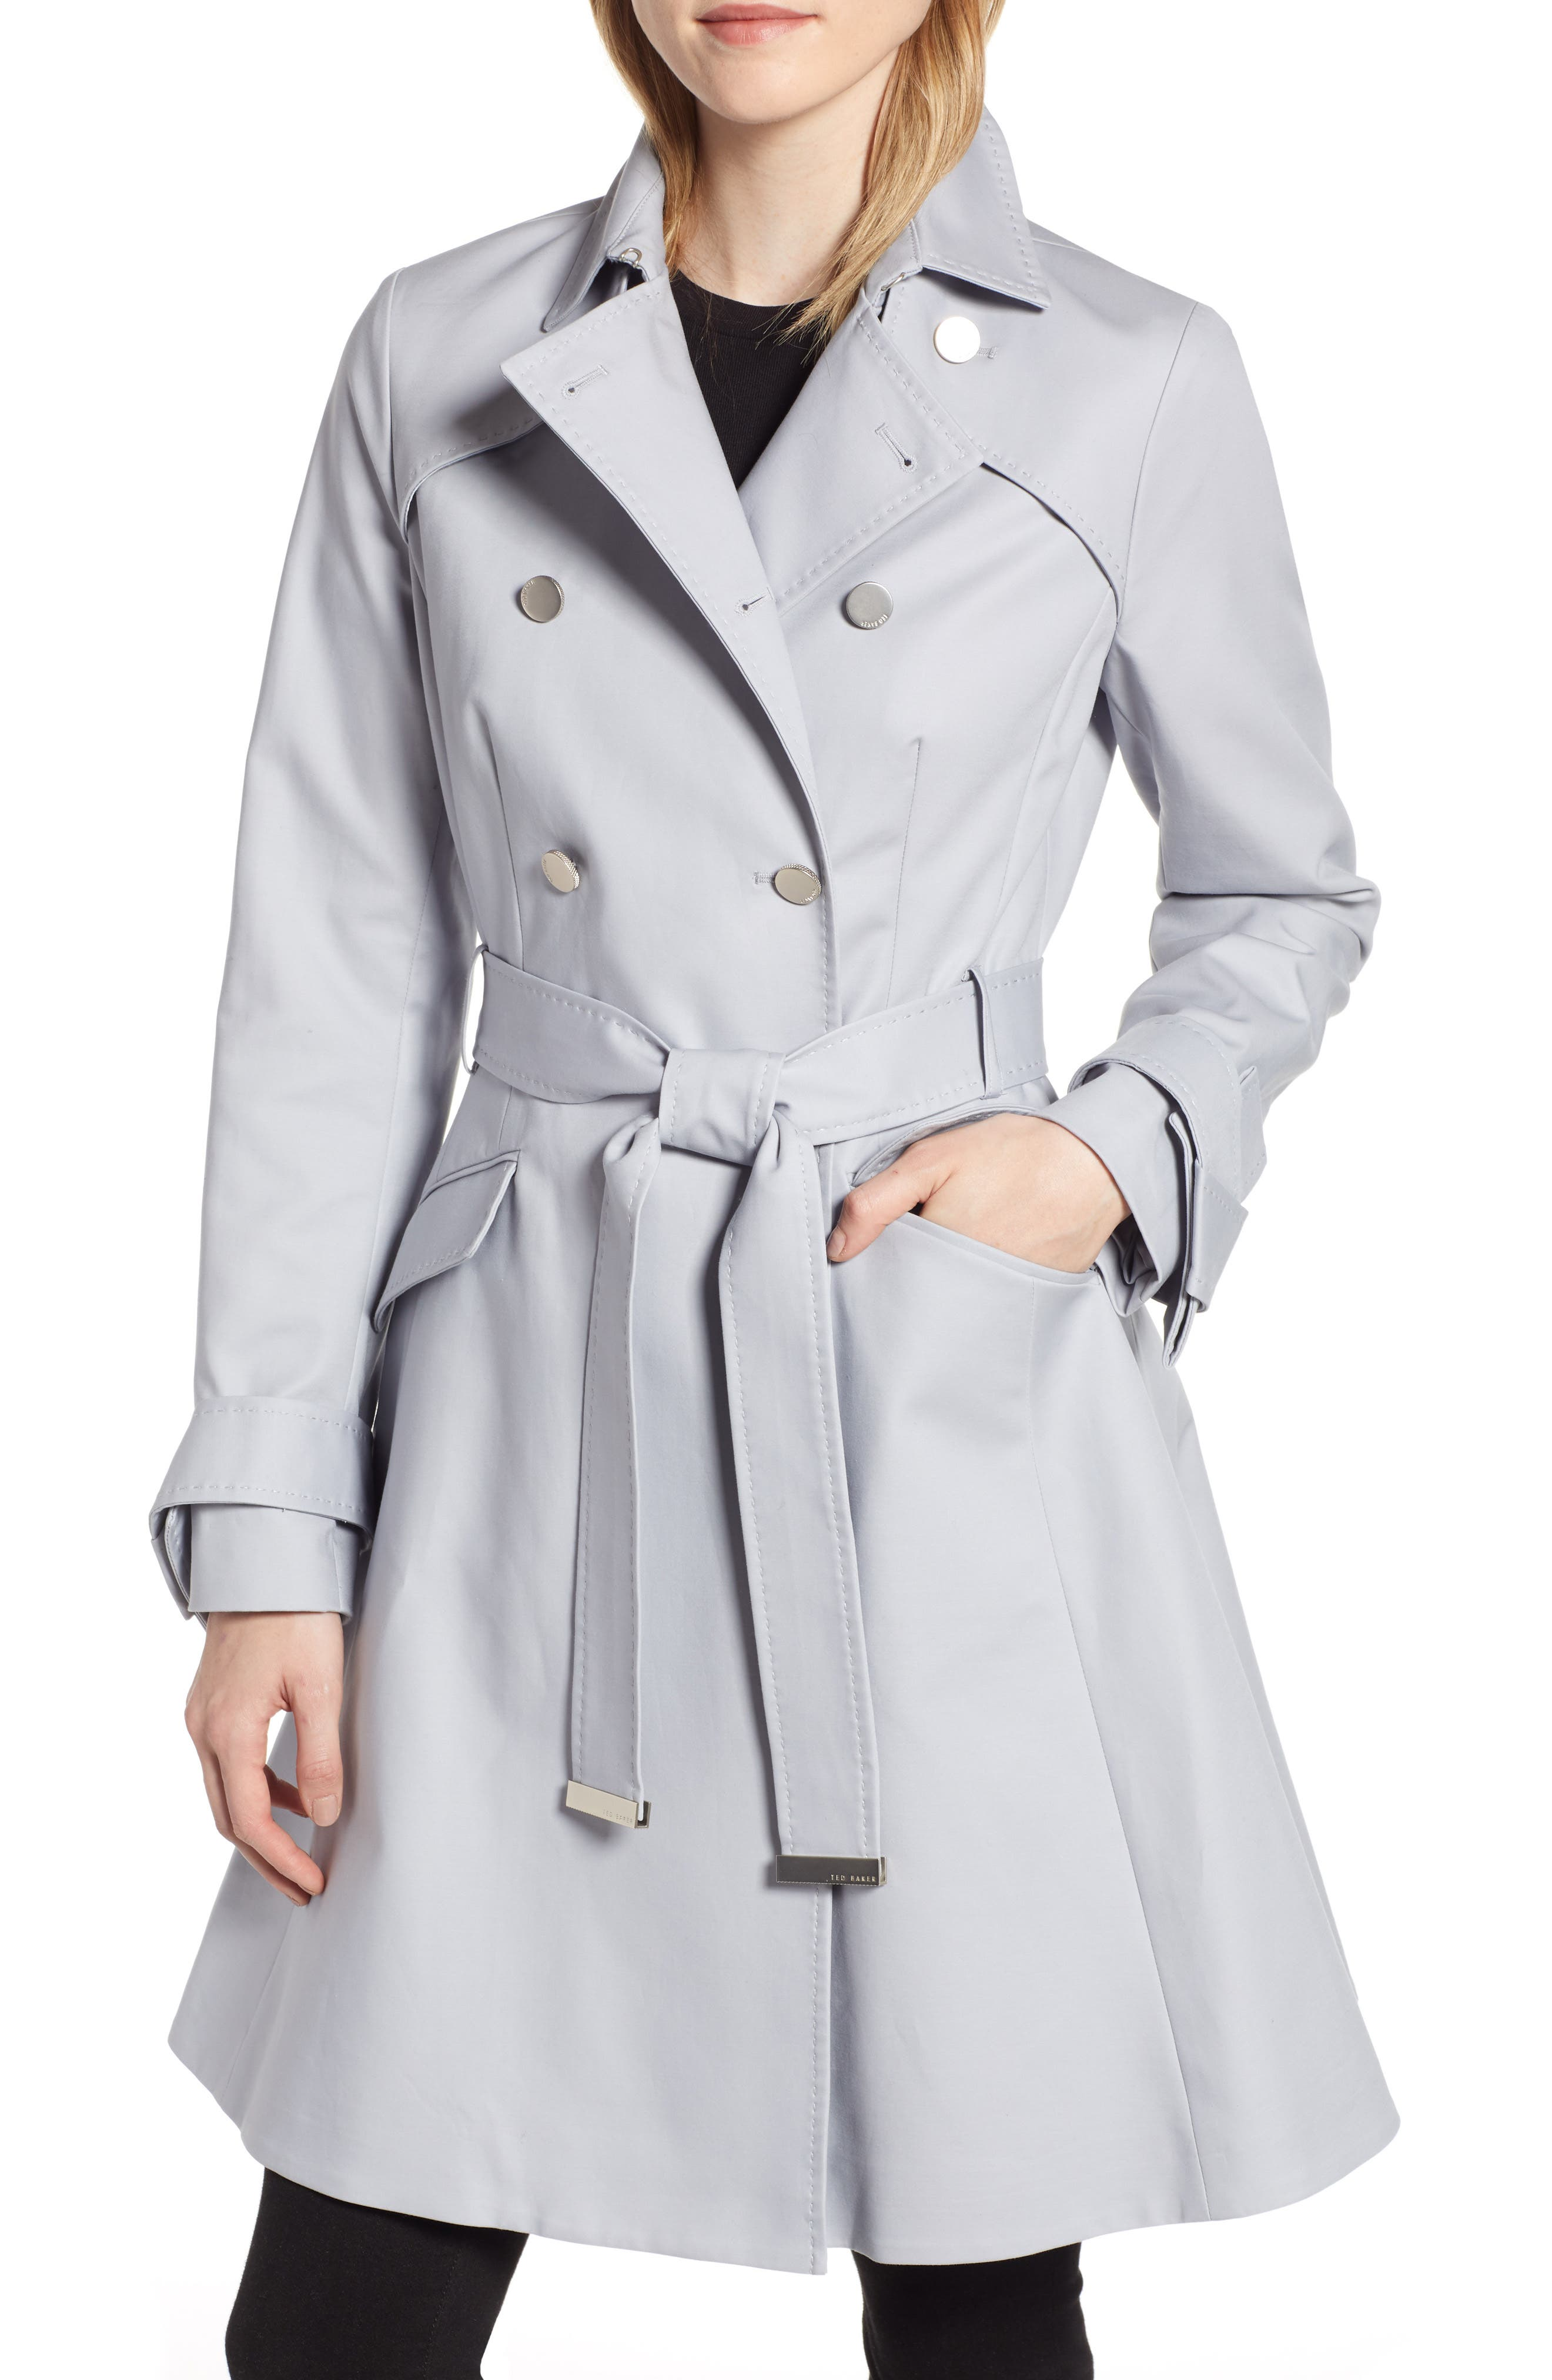 TED BAKER LONDON Tie Cuff Detail Trench Coat, Main, color, GREY